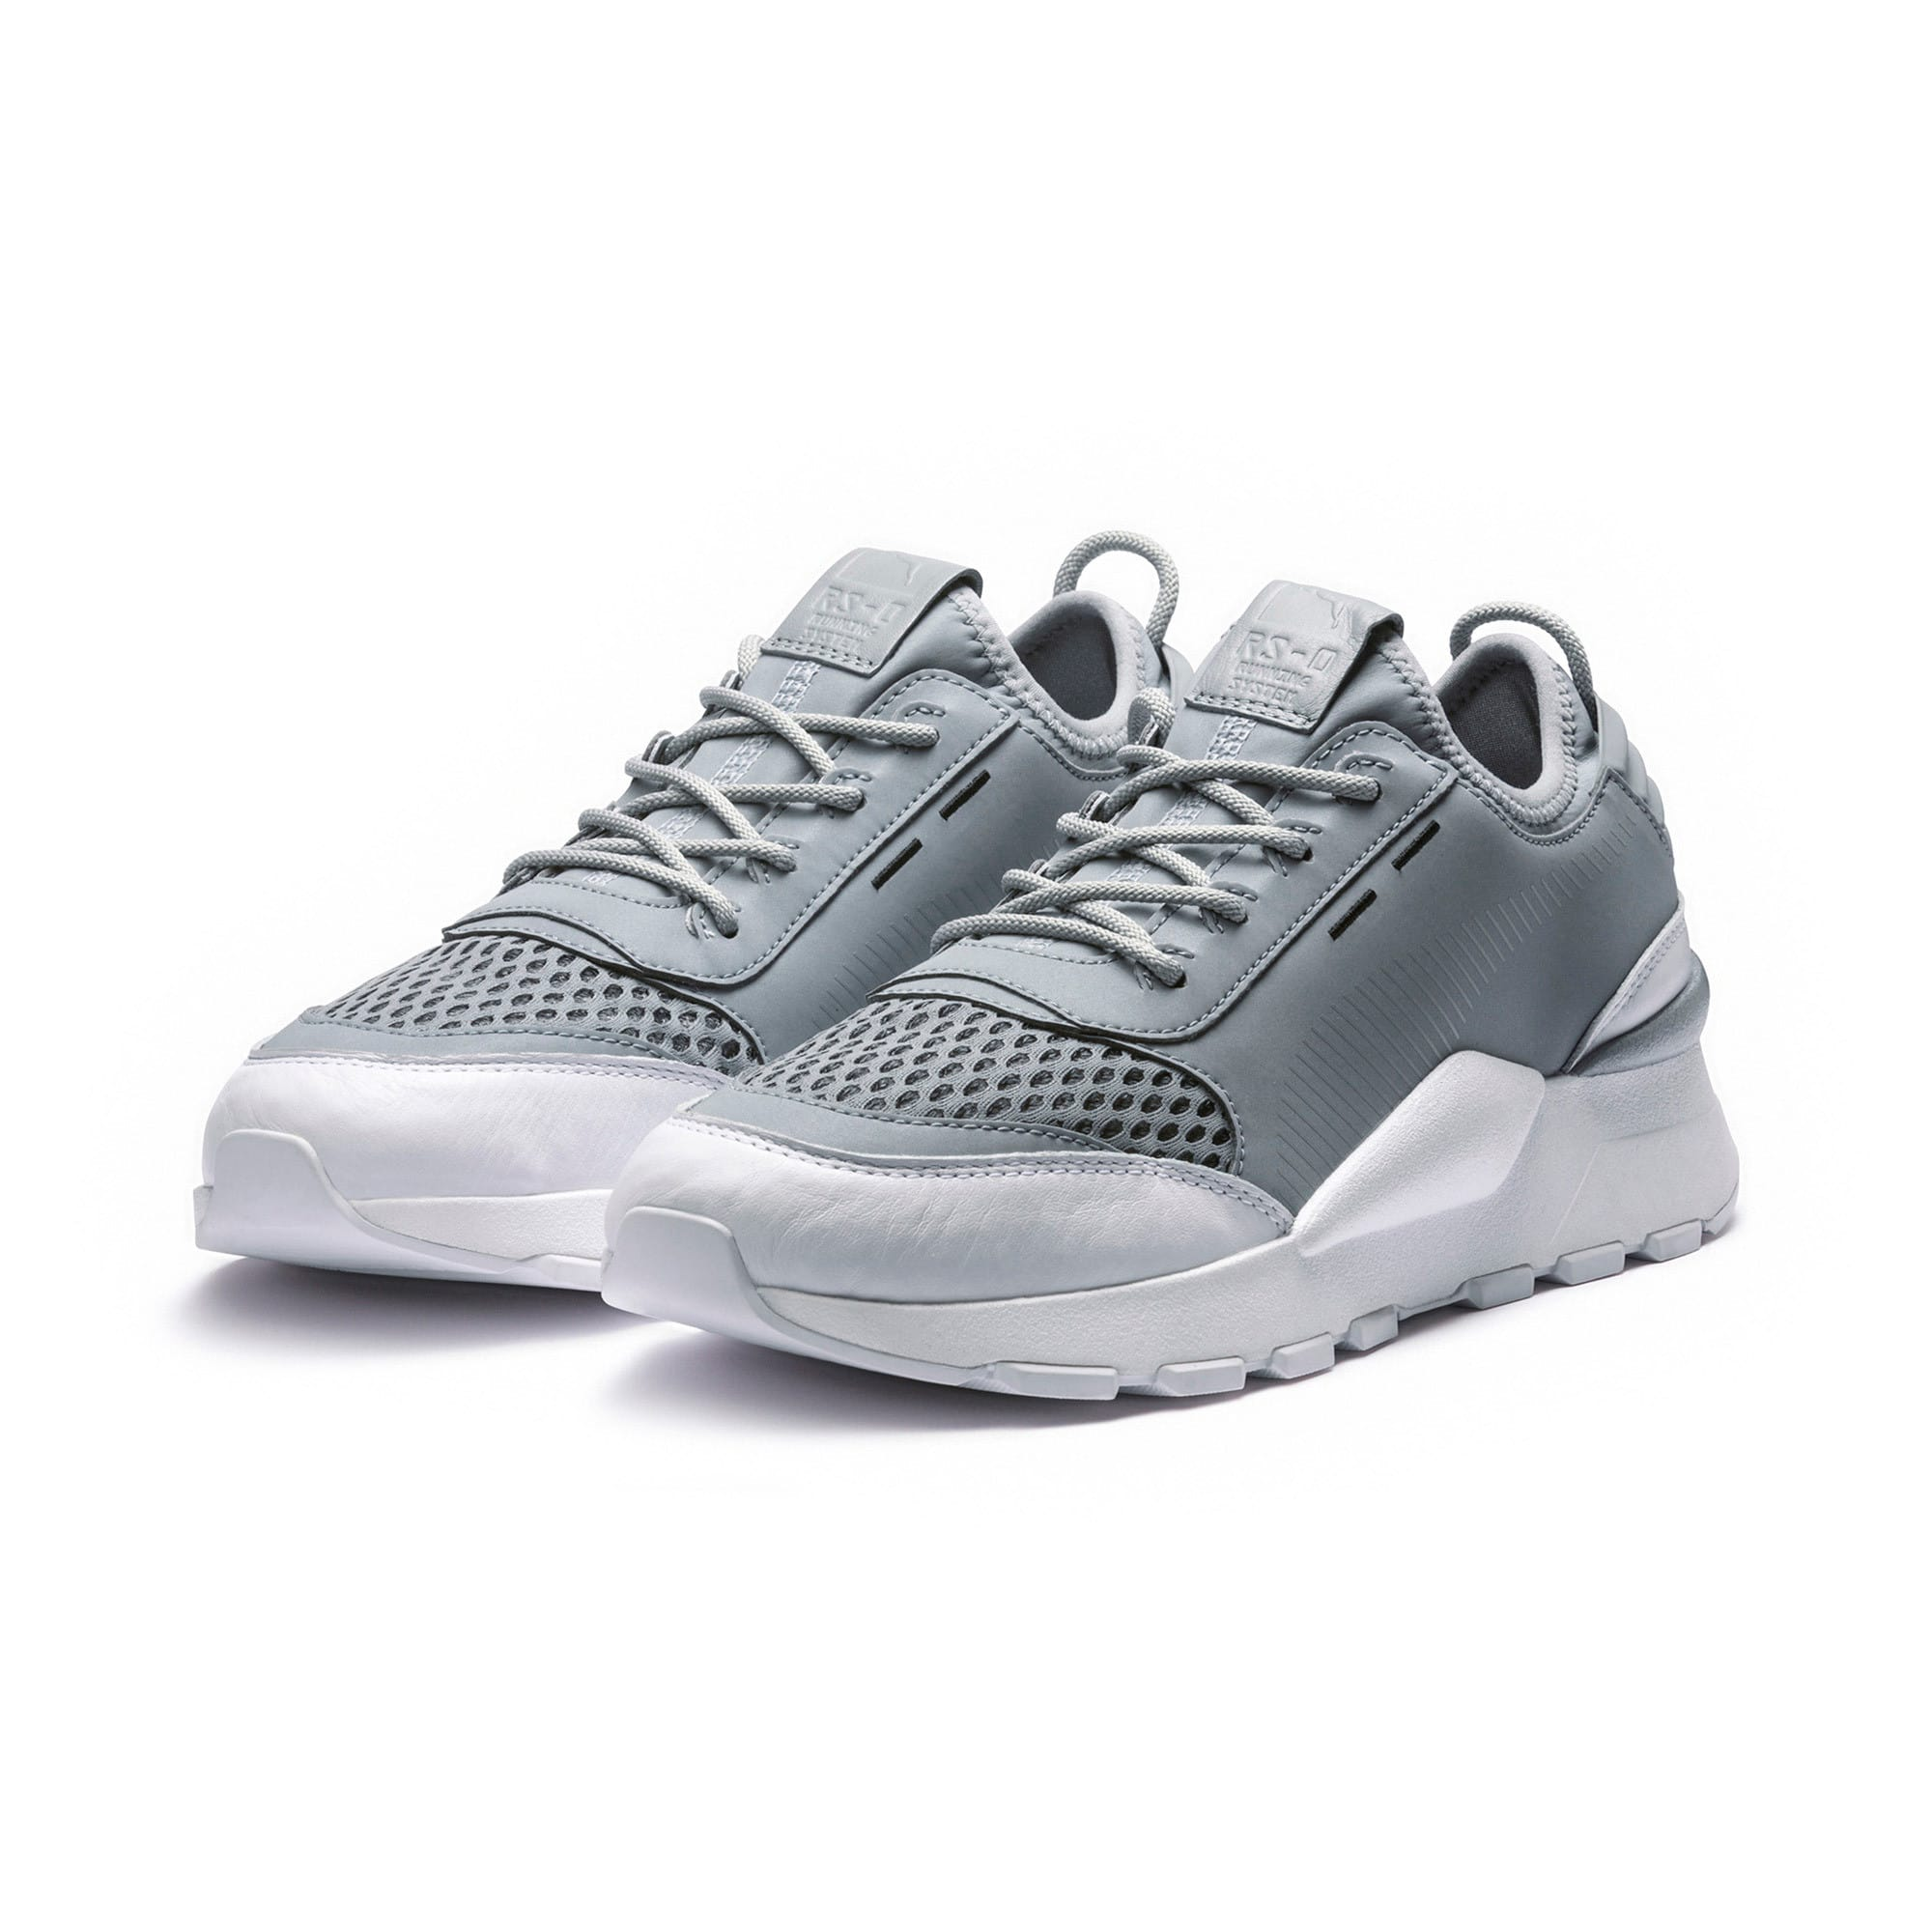 RS-0 Optic Trainers, PumaSilver-Quarry-PumaWhite, large